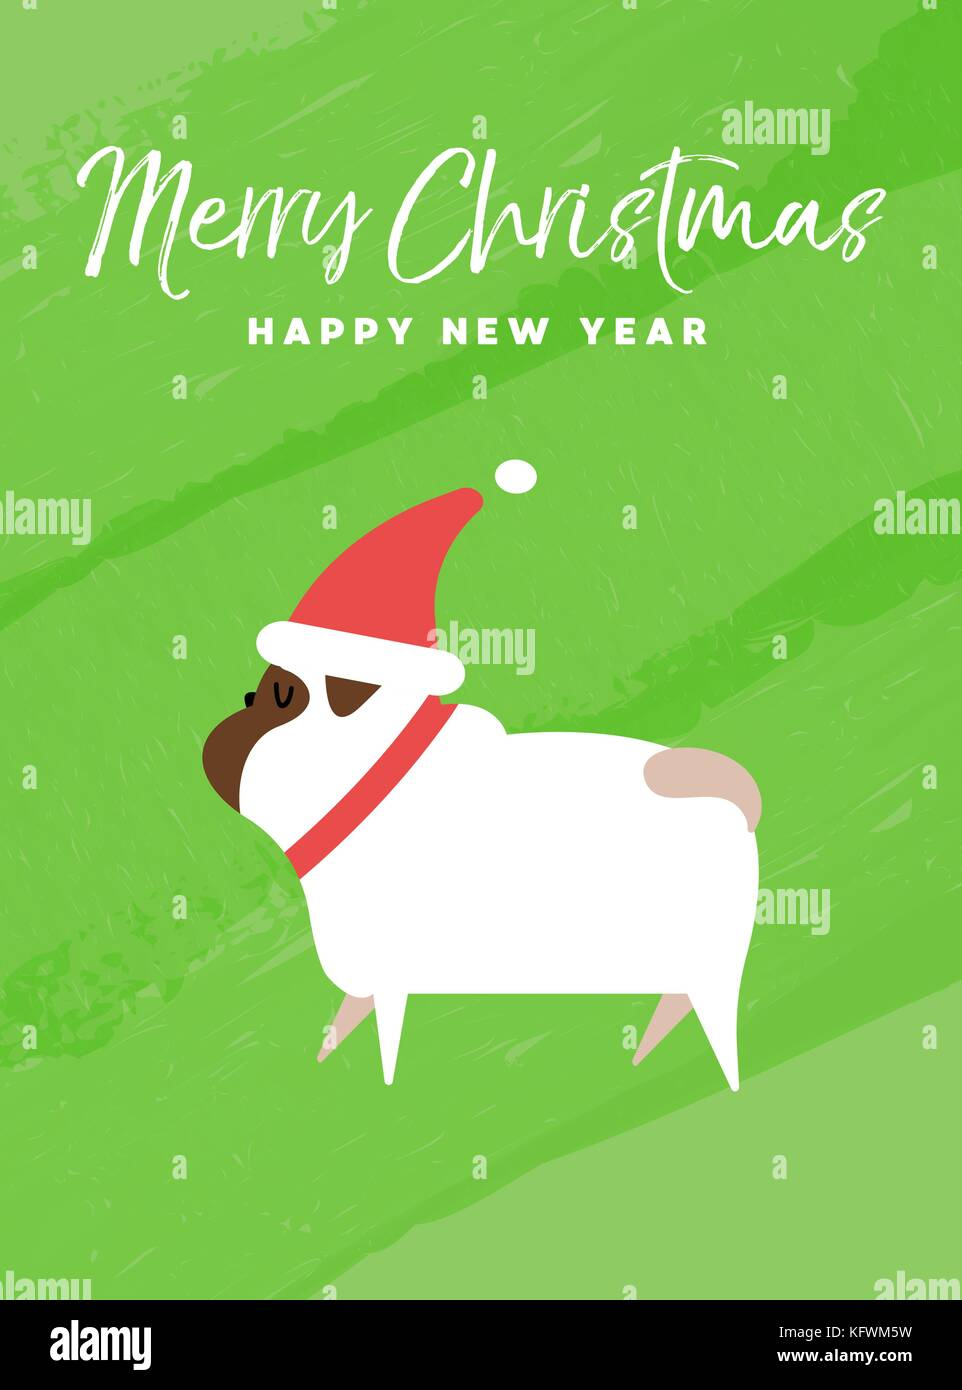 Merry christmas and happy new year holiday greeting card stock merry christmas and happy new year holiday greeting card illustration funny pug dog with santa claus hat on colorful texture background eps10 vector m4hsunfo